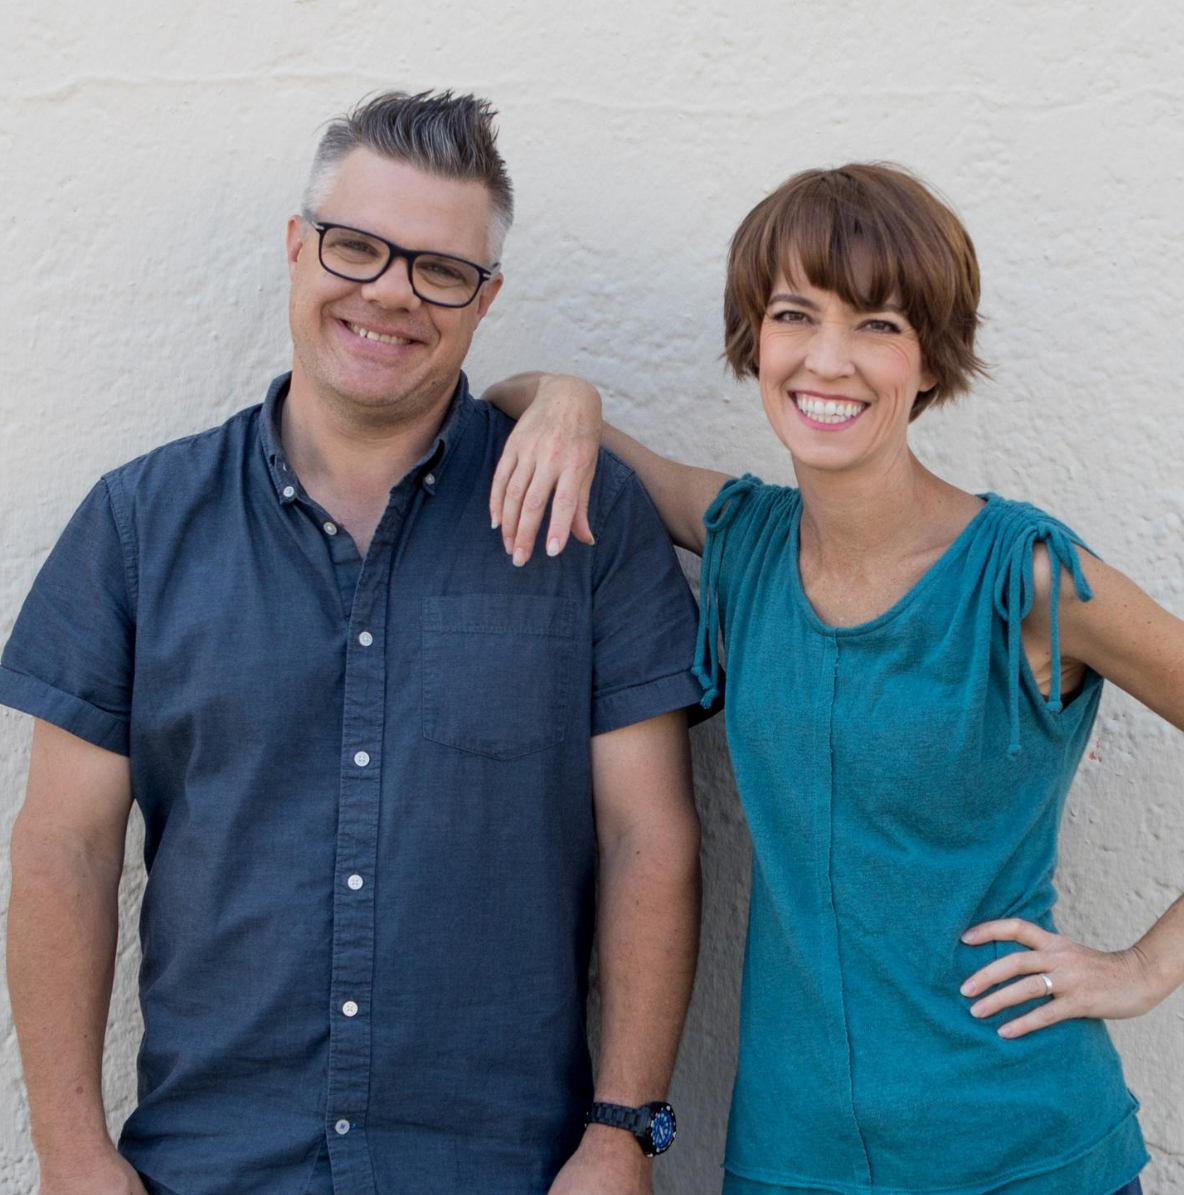 Mary Mack and Tim Harmston kick off their 2019 Happy Camper Comedy Tour in Alma, WI.